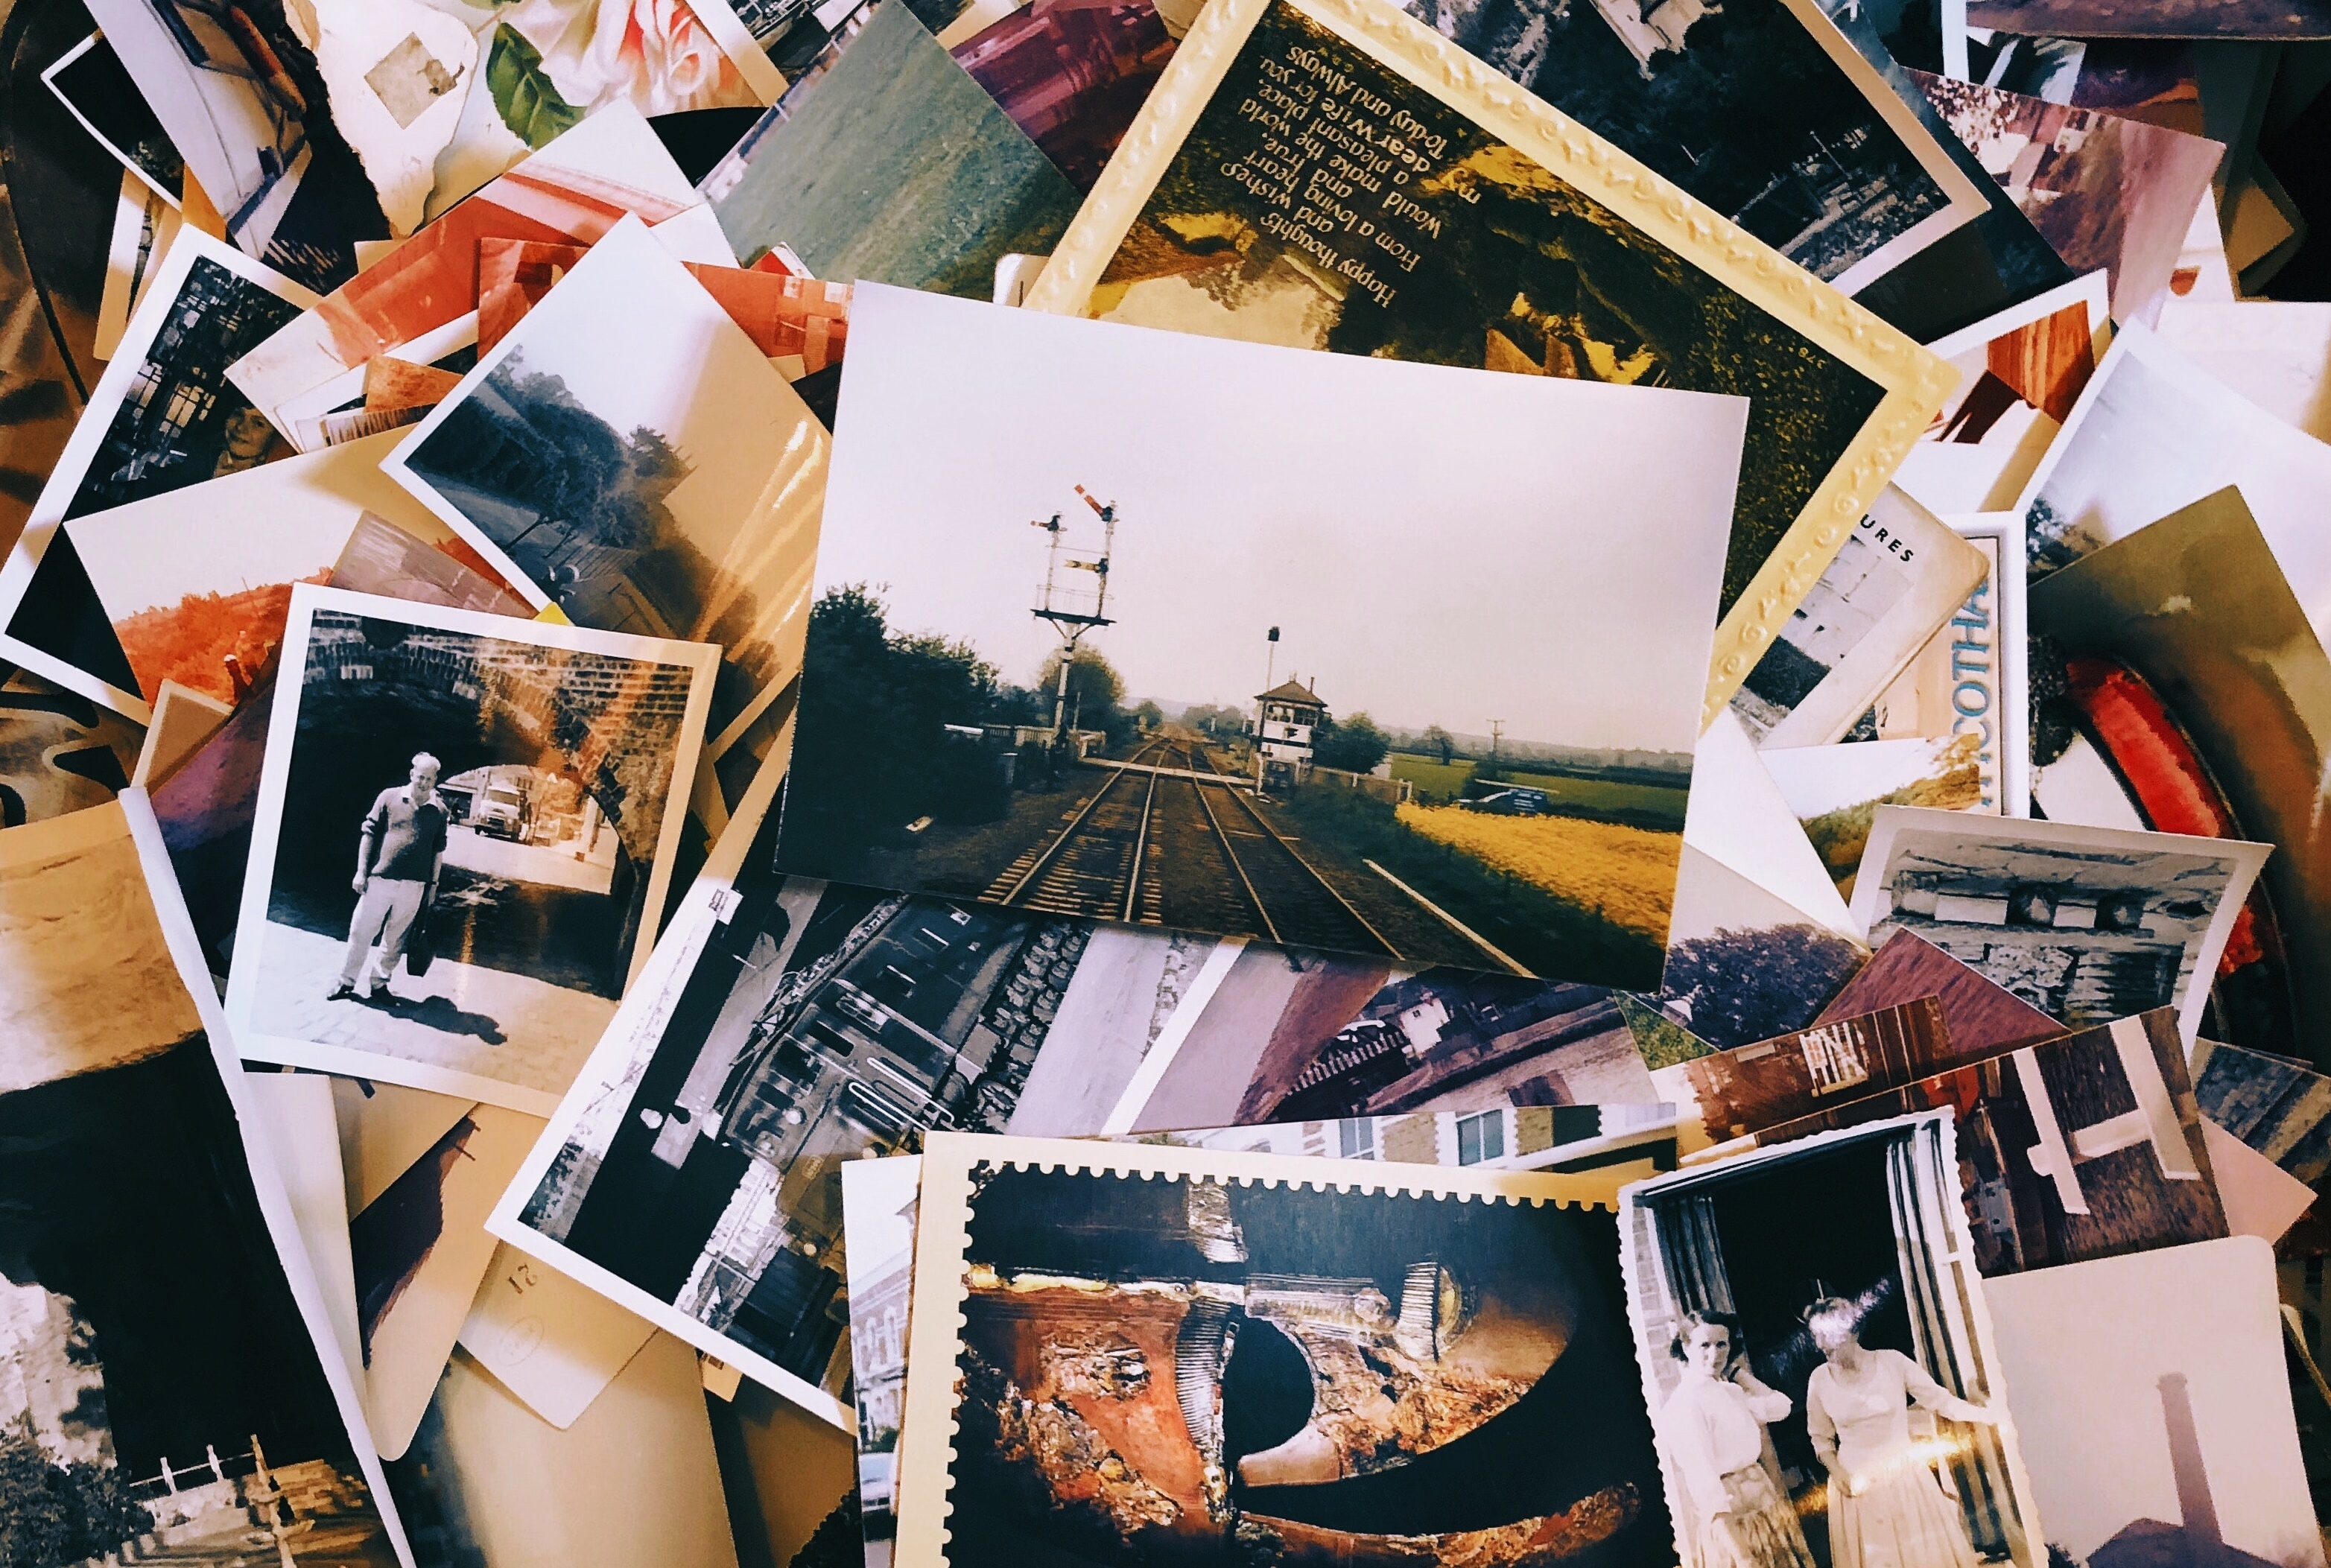 An image of a pile of photographs